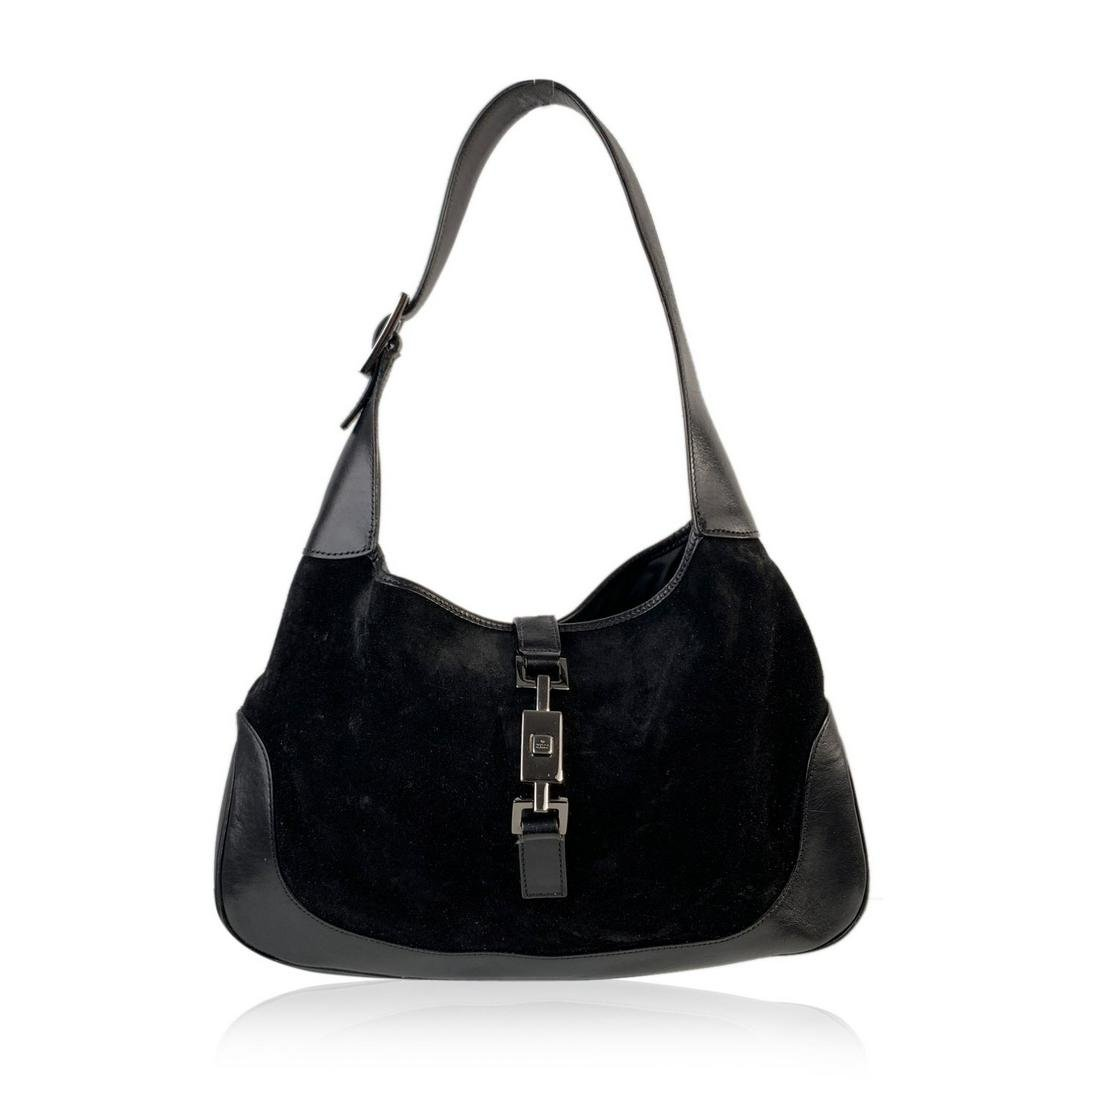 Gucci Black Suede and Leather Hobo Jackie O Shoulder